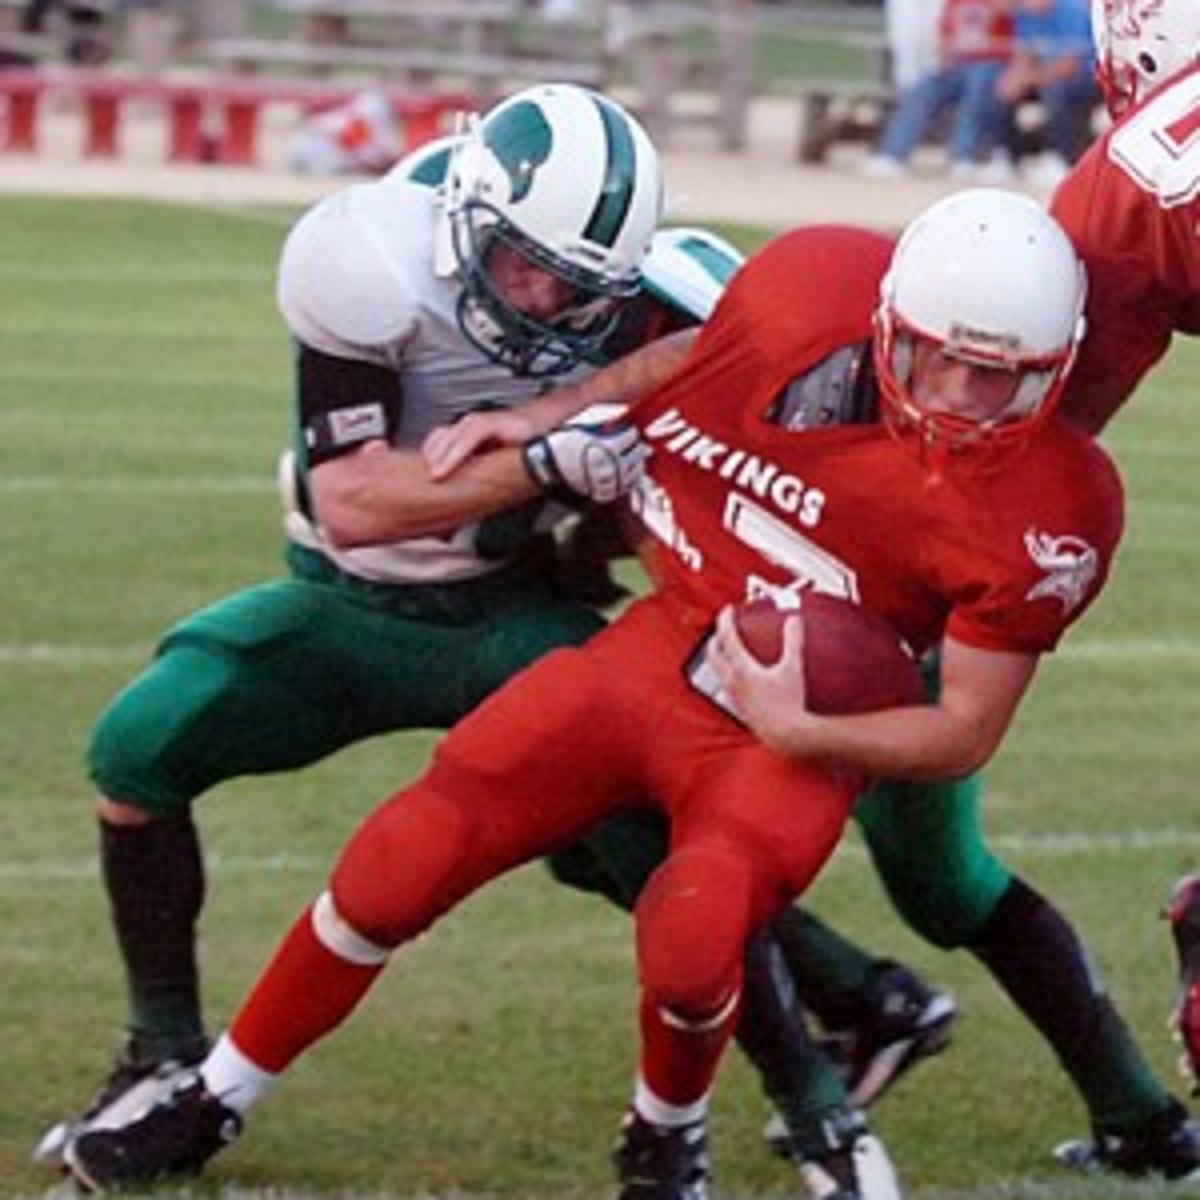 FOOTBALL: Rio pitches shutout | Madison and Wisconsin Sports